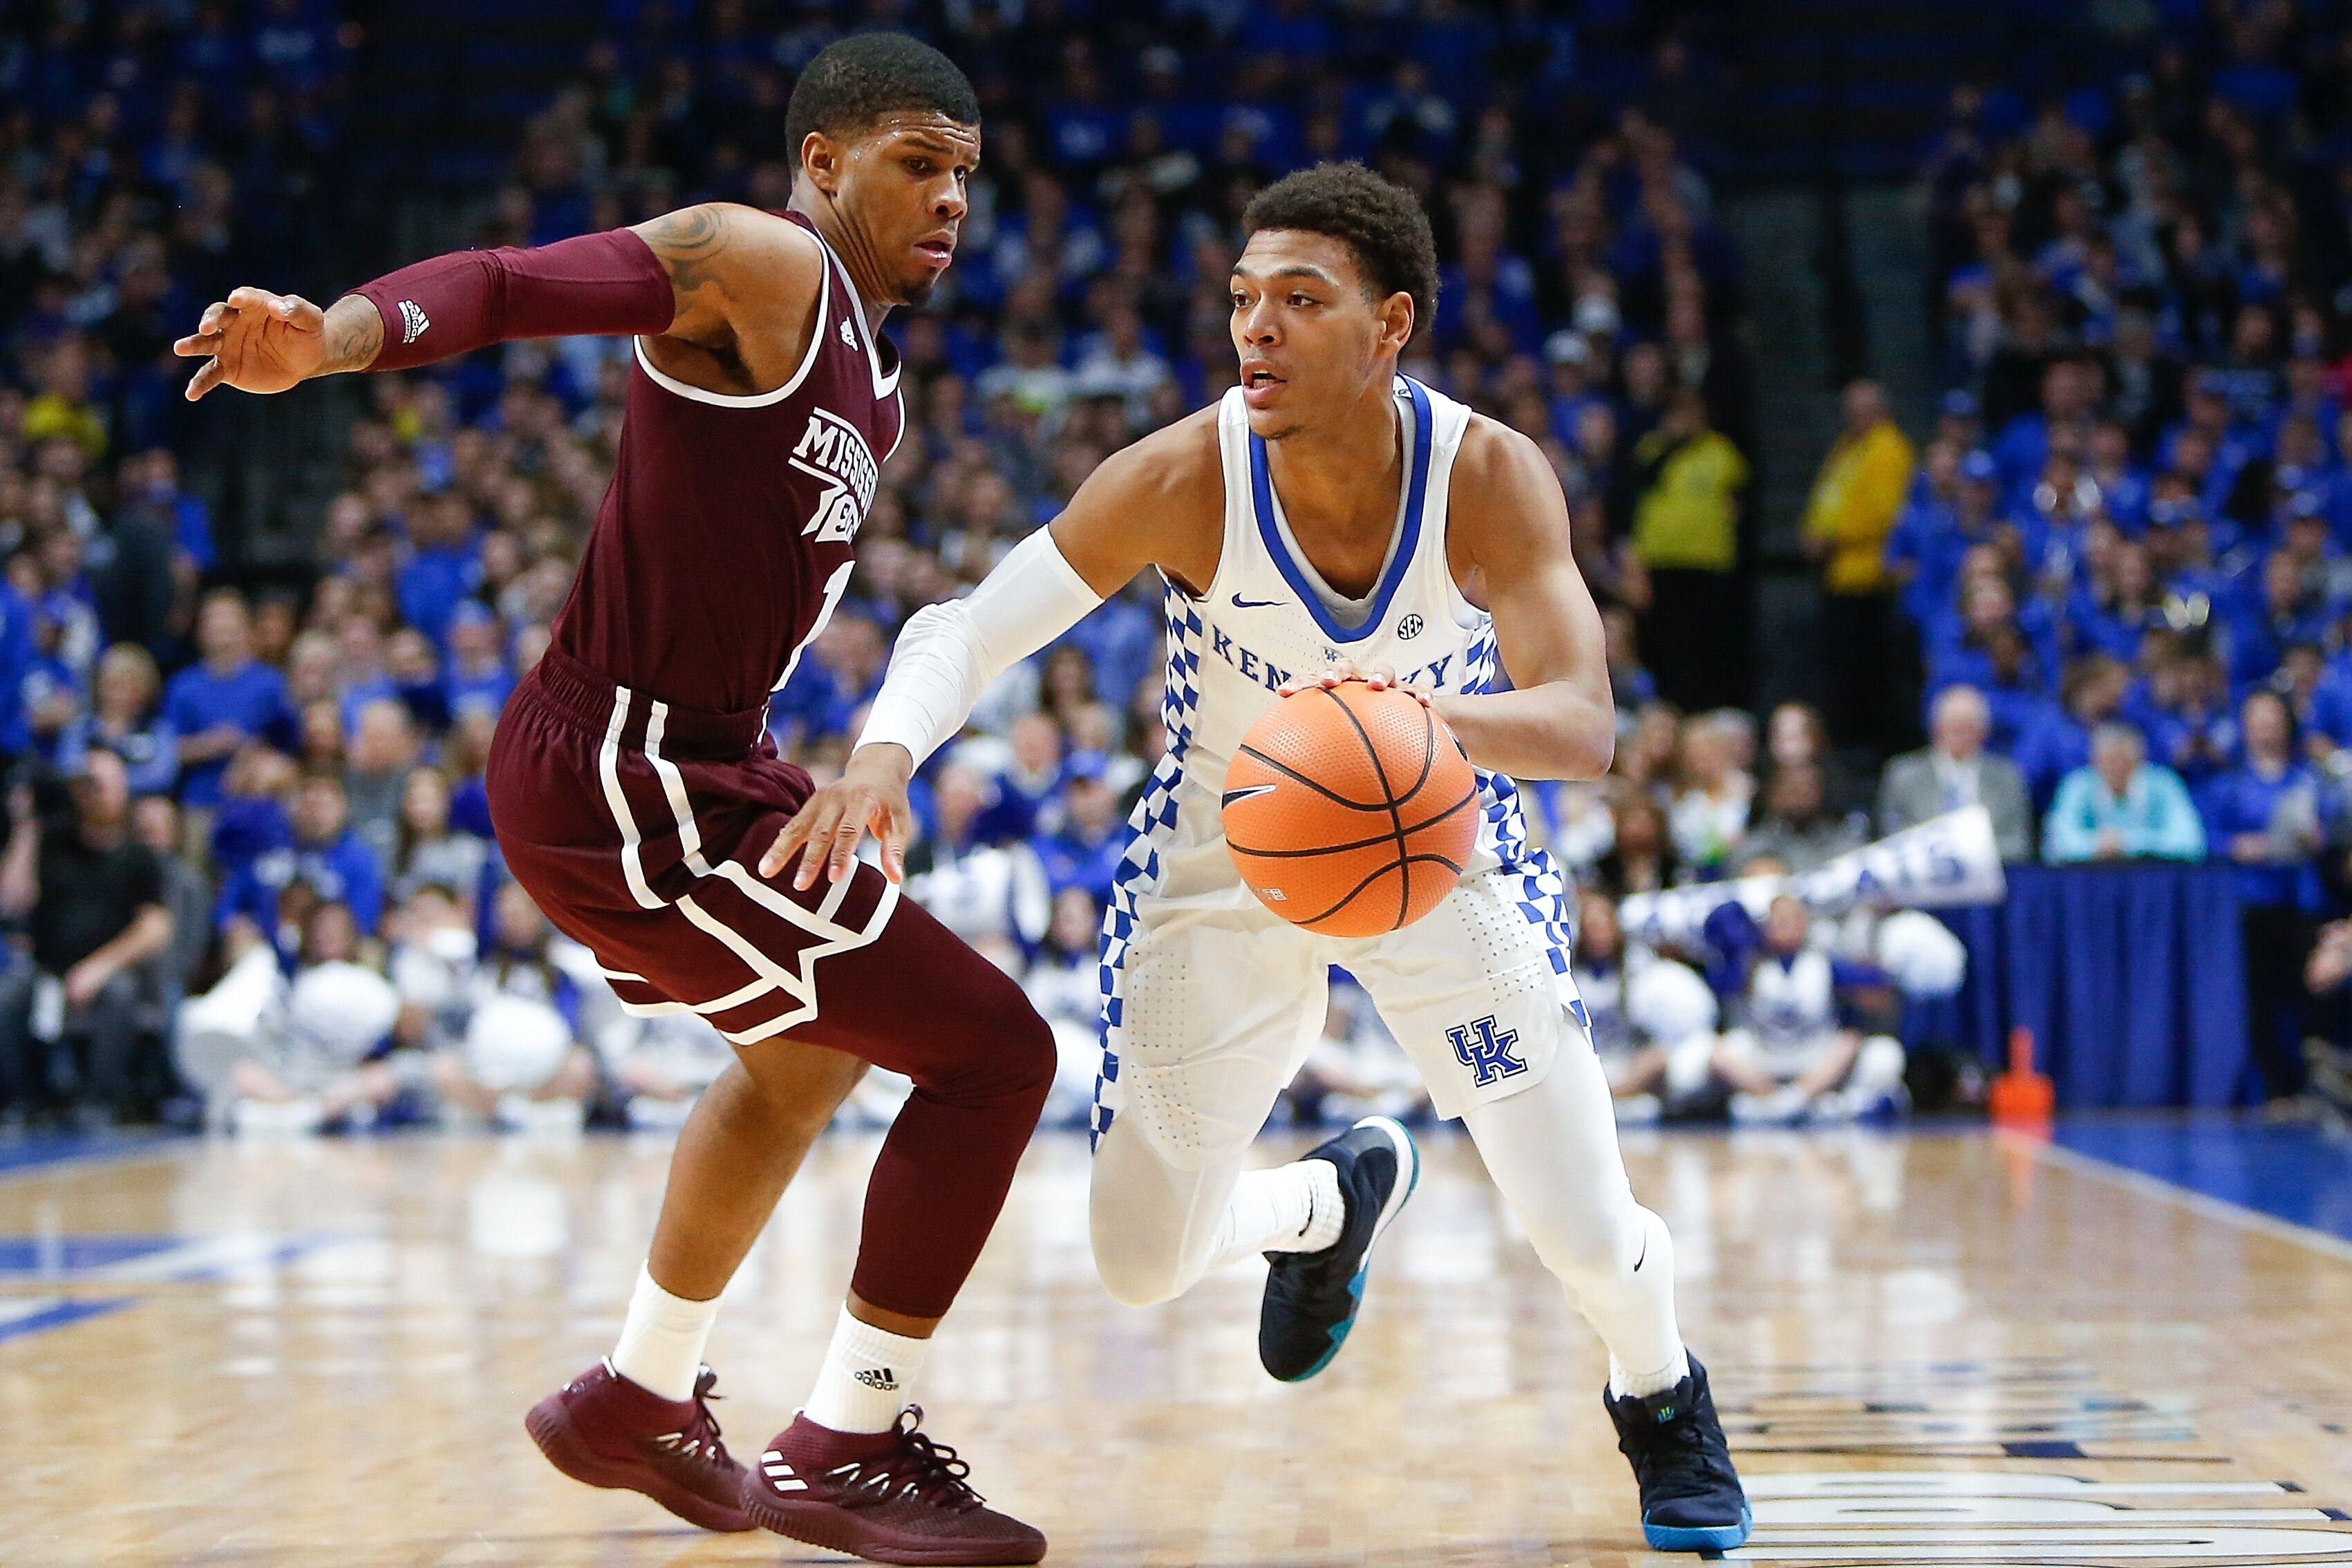 Calipari S Kentucky Wildcats Are Young Streaky And Loaded: Kentucky Basketball: Game Preview, 3 Keys Vs Arkansas